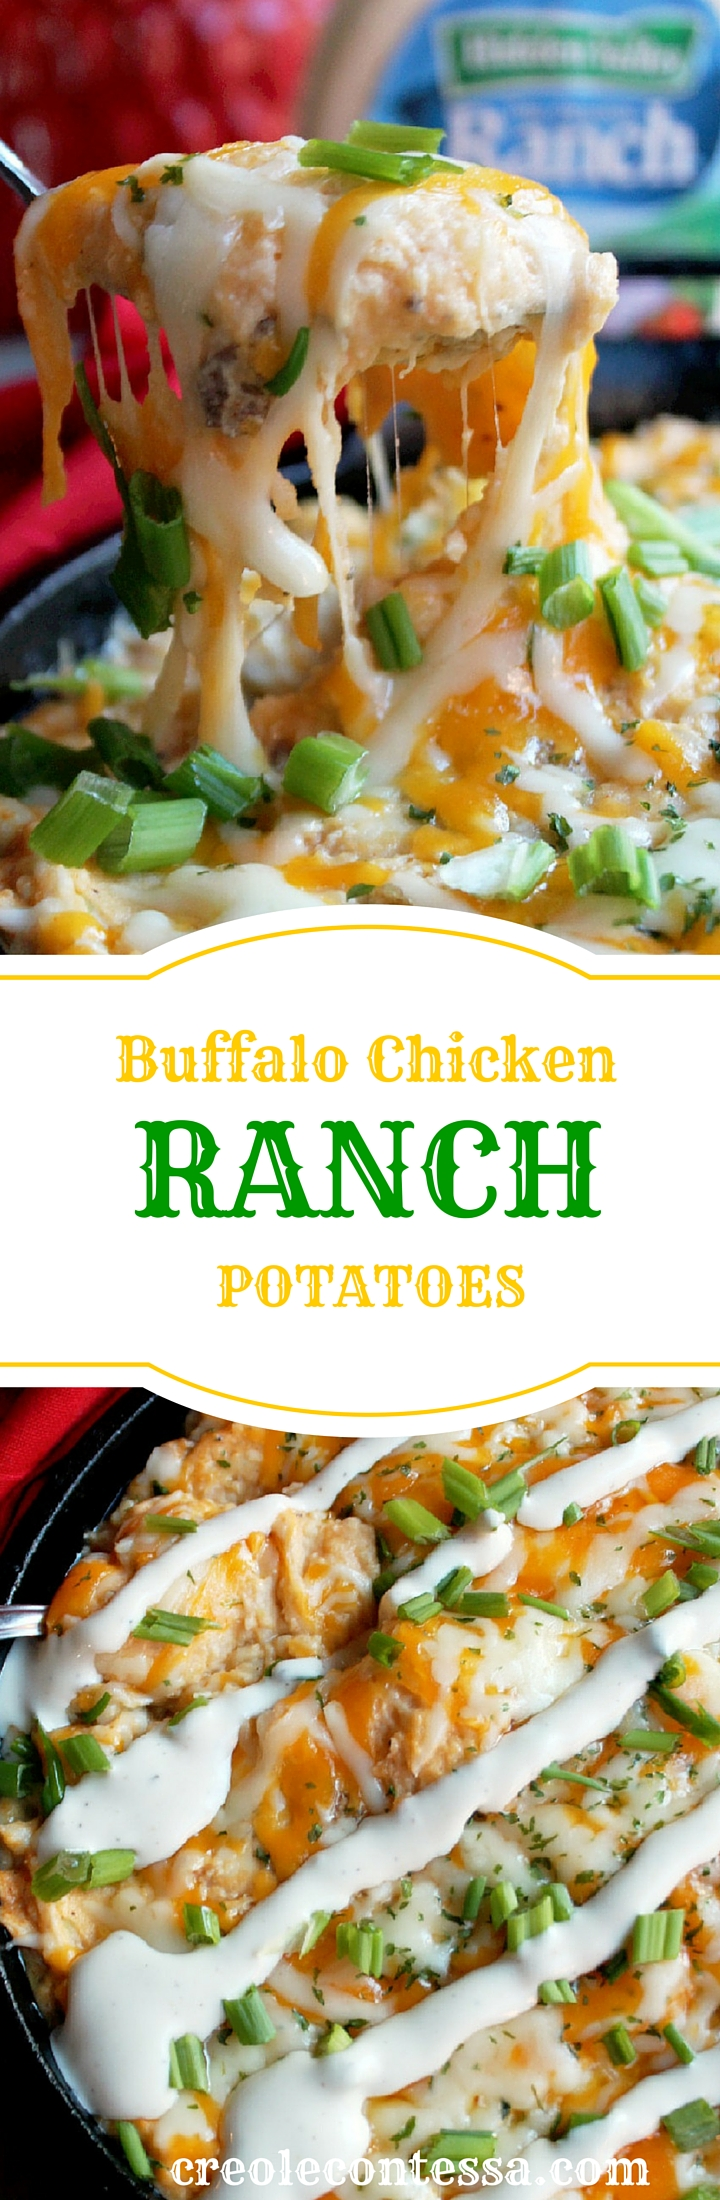 Buffalo Chicken Ranch Potato Casserole -Creole Contessa